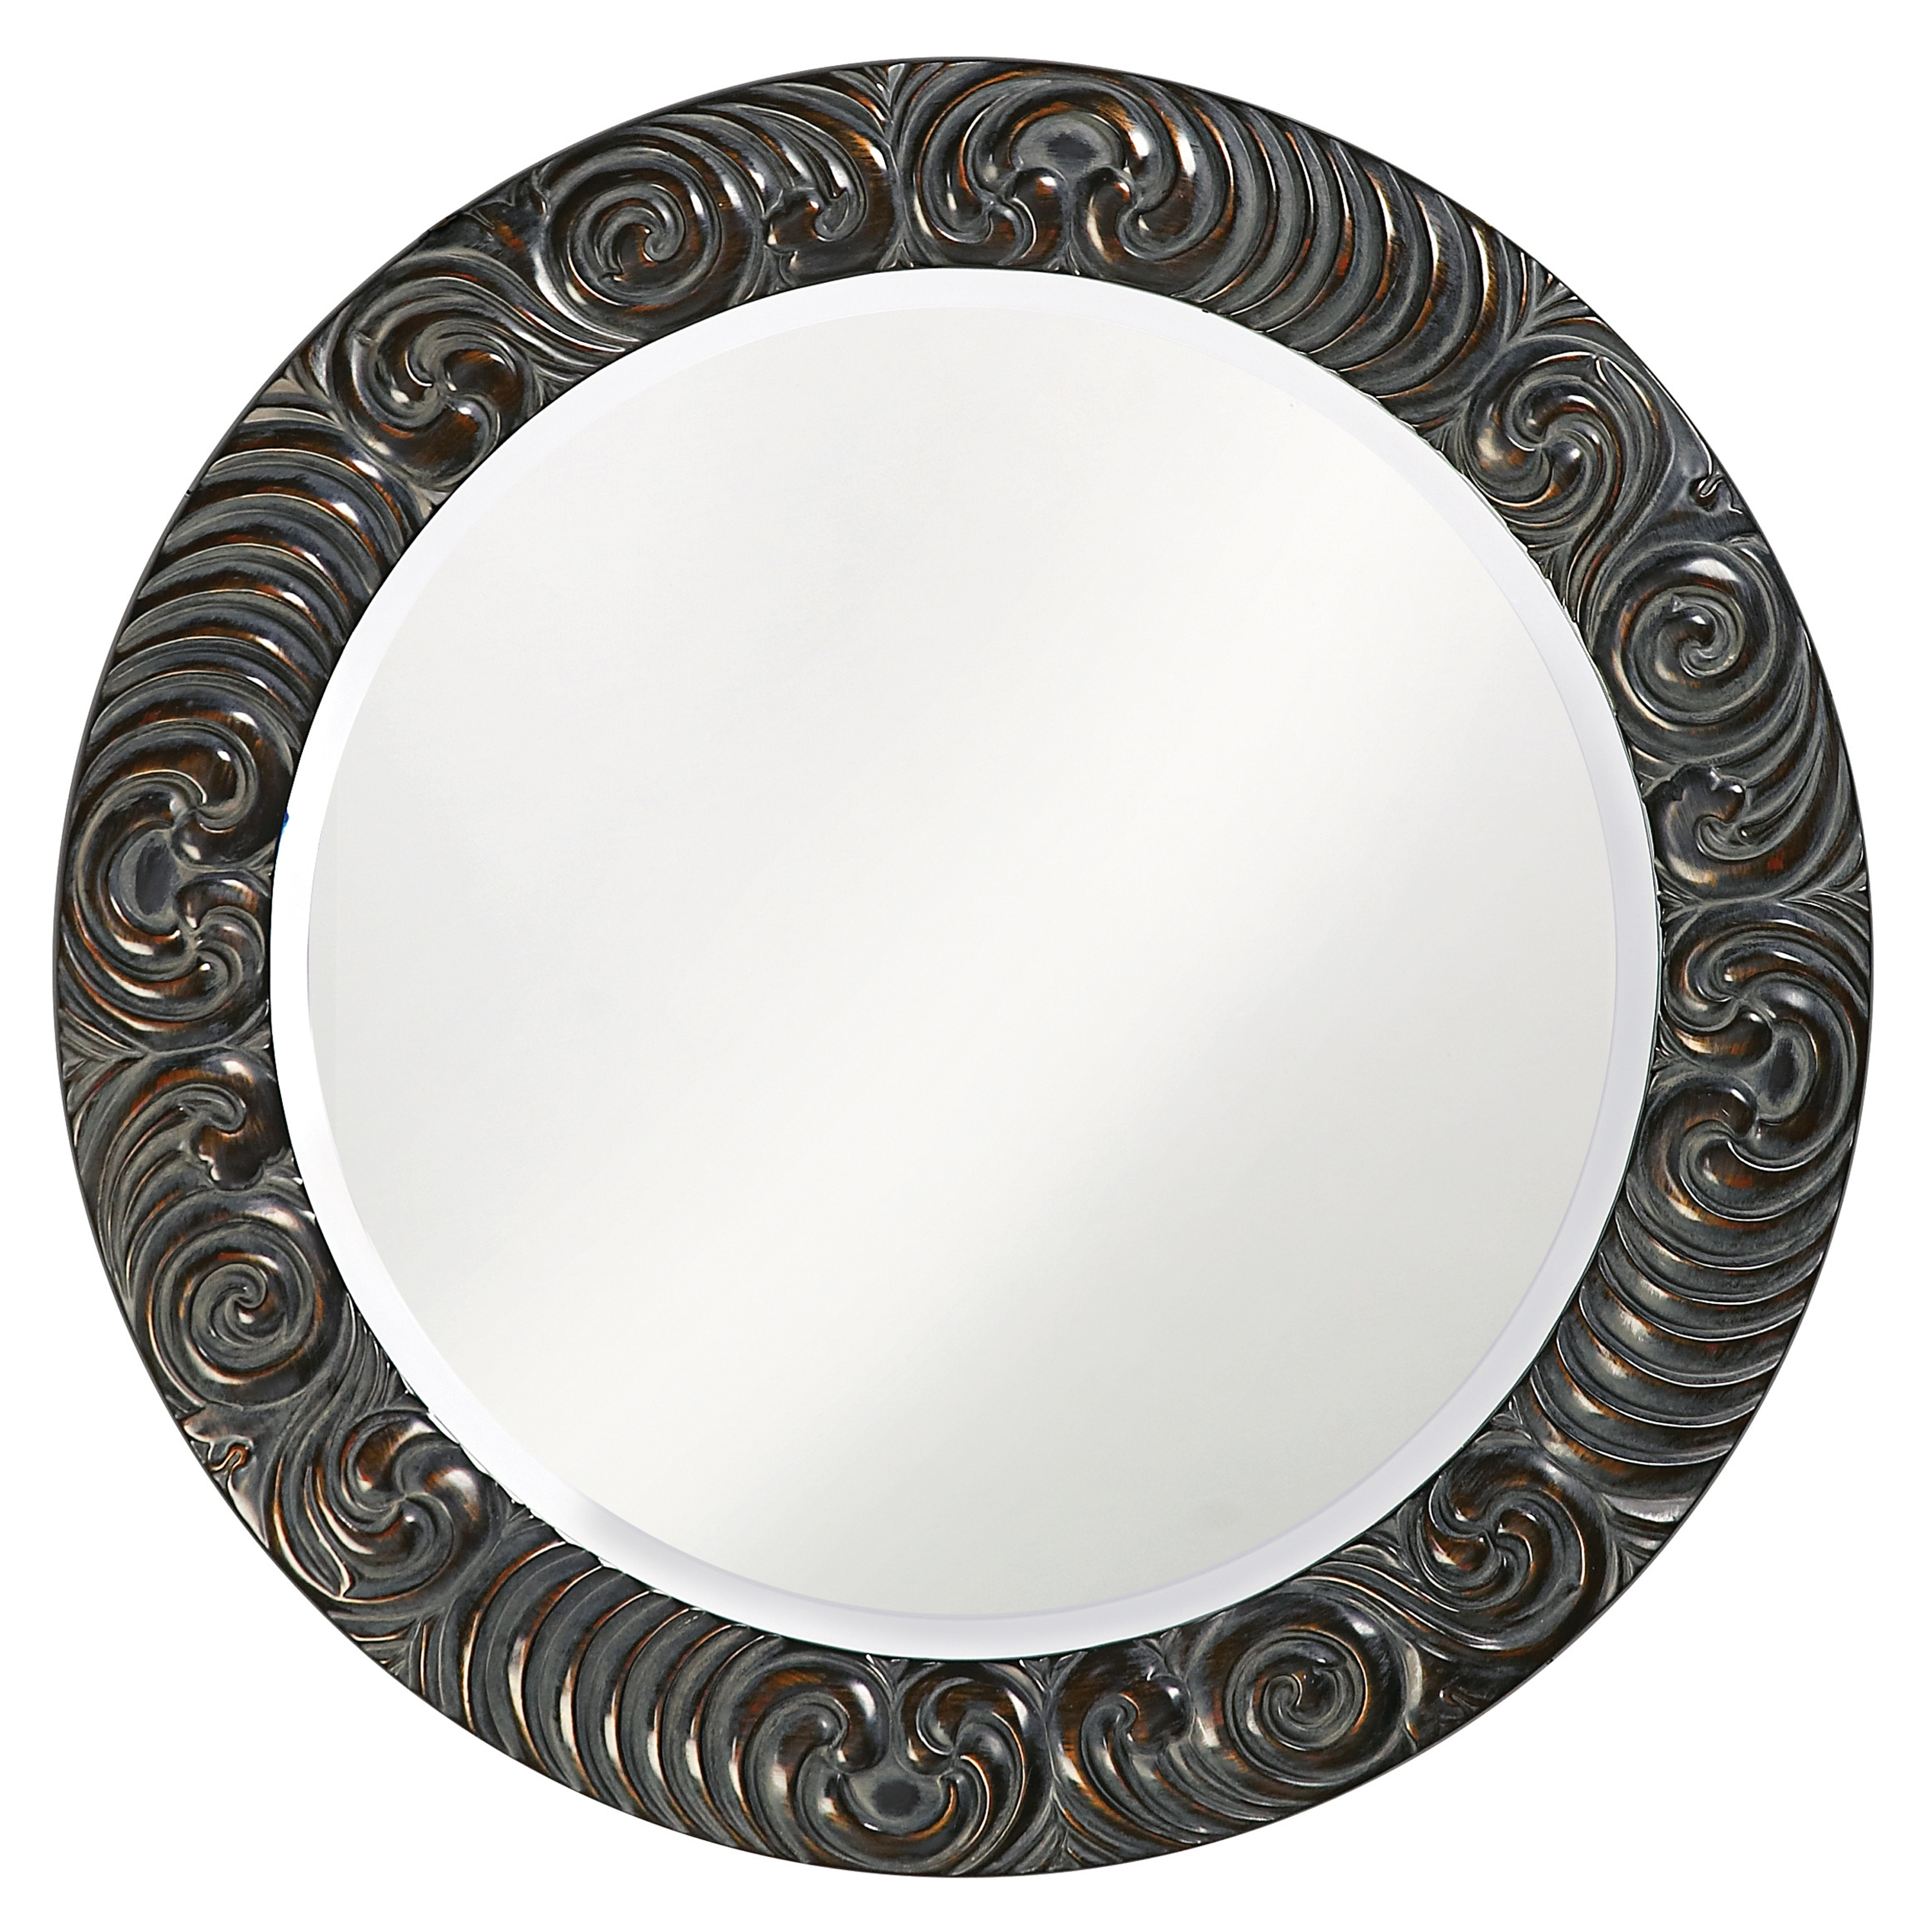 Breanne Black Resin Round Mirror